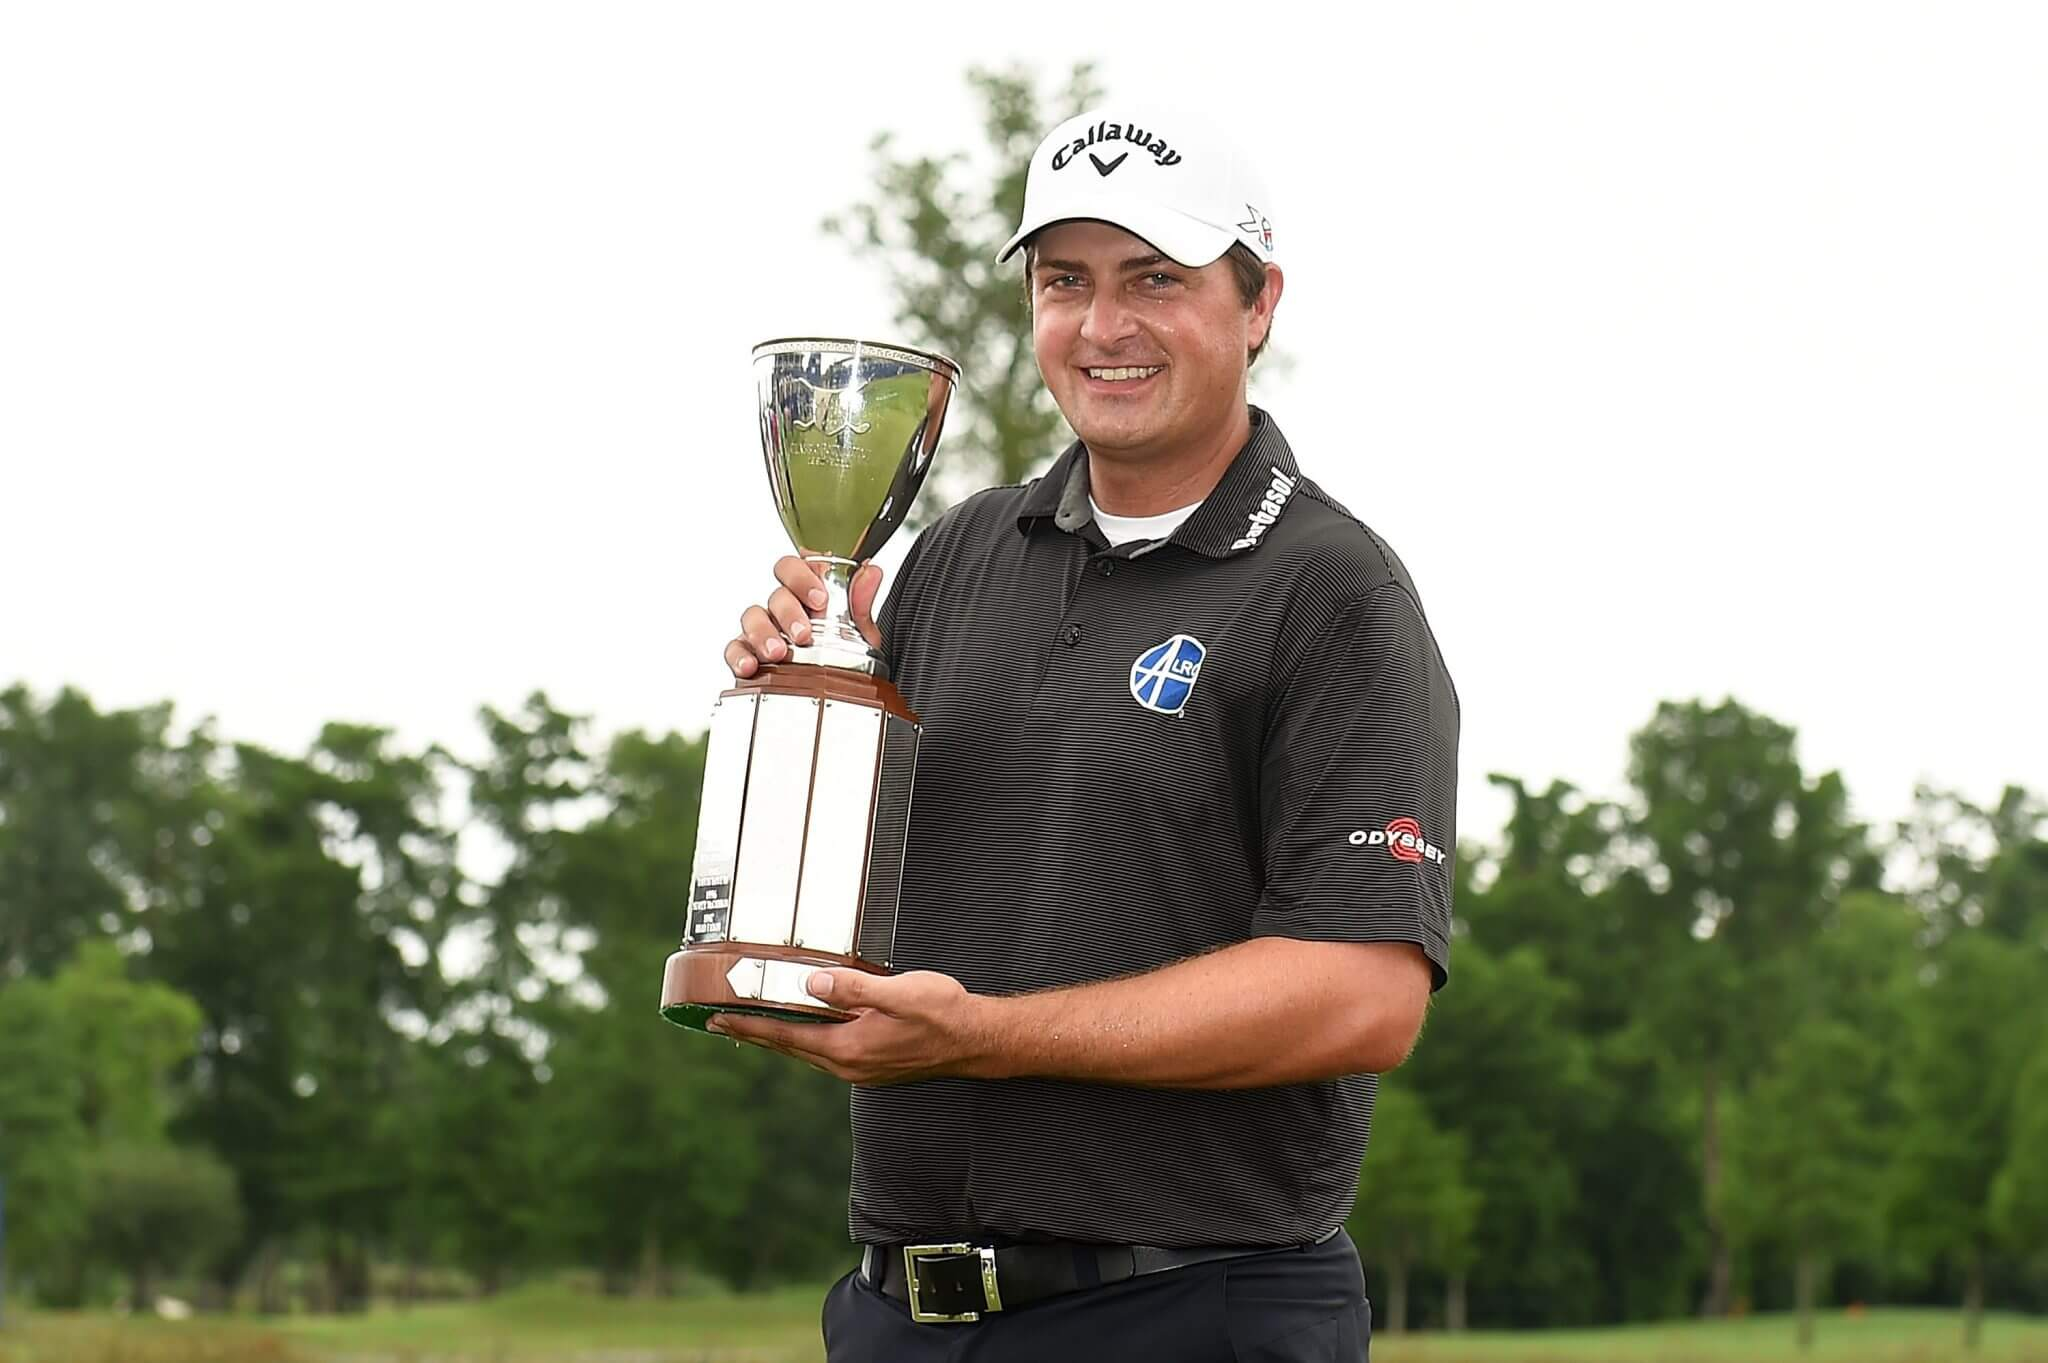 AVONDALE, LA - MAY 02: Brian Stuard celebrates with the trophy following a two hole playoff to win the Zurich Classic at TPC Louisiana on May 2, 2016 in Avondale, Louisiana. (Photo by Stacy Revere/Getty Images)